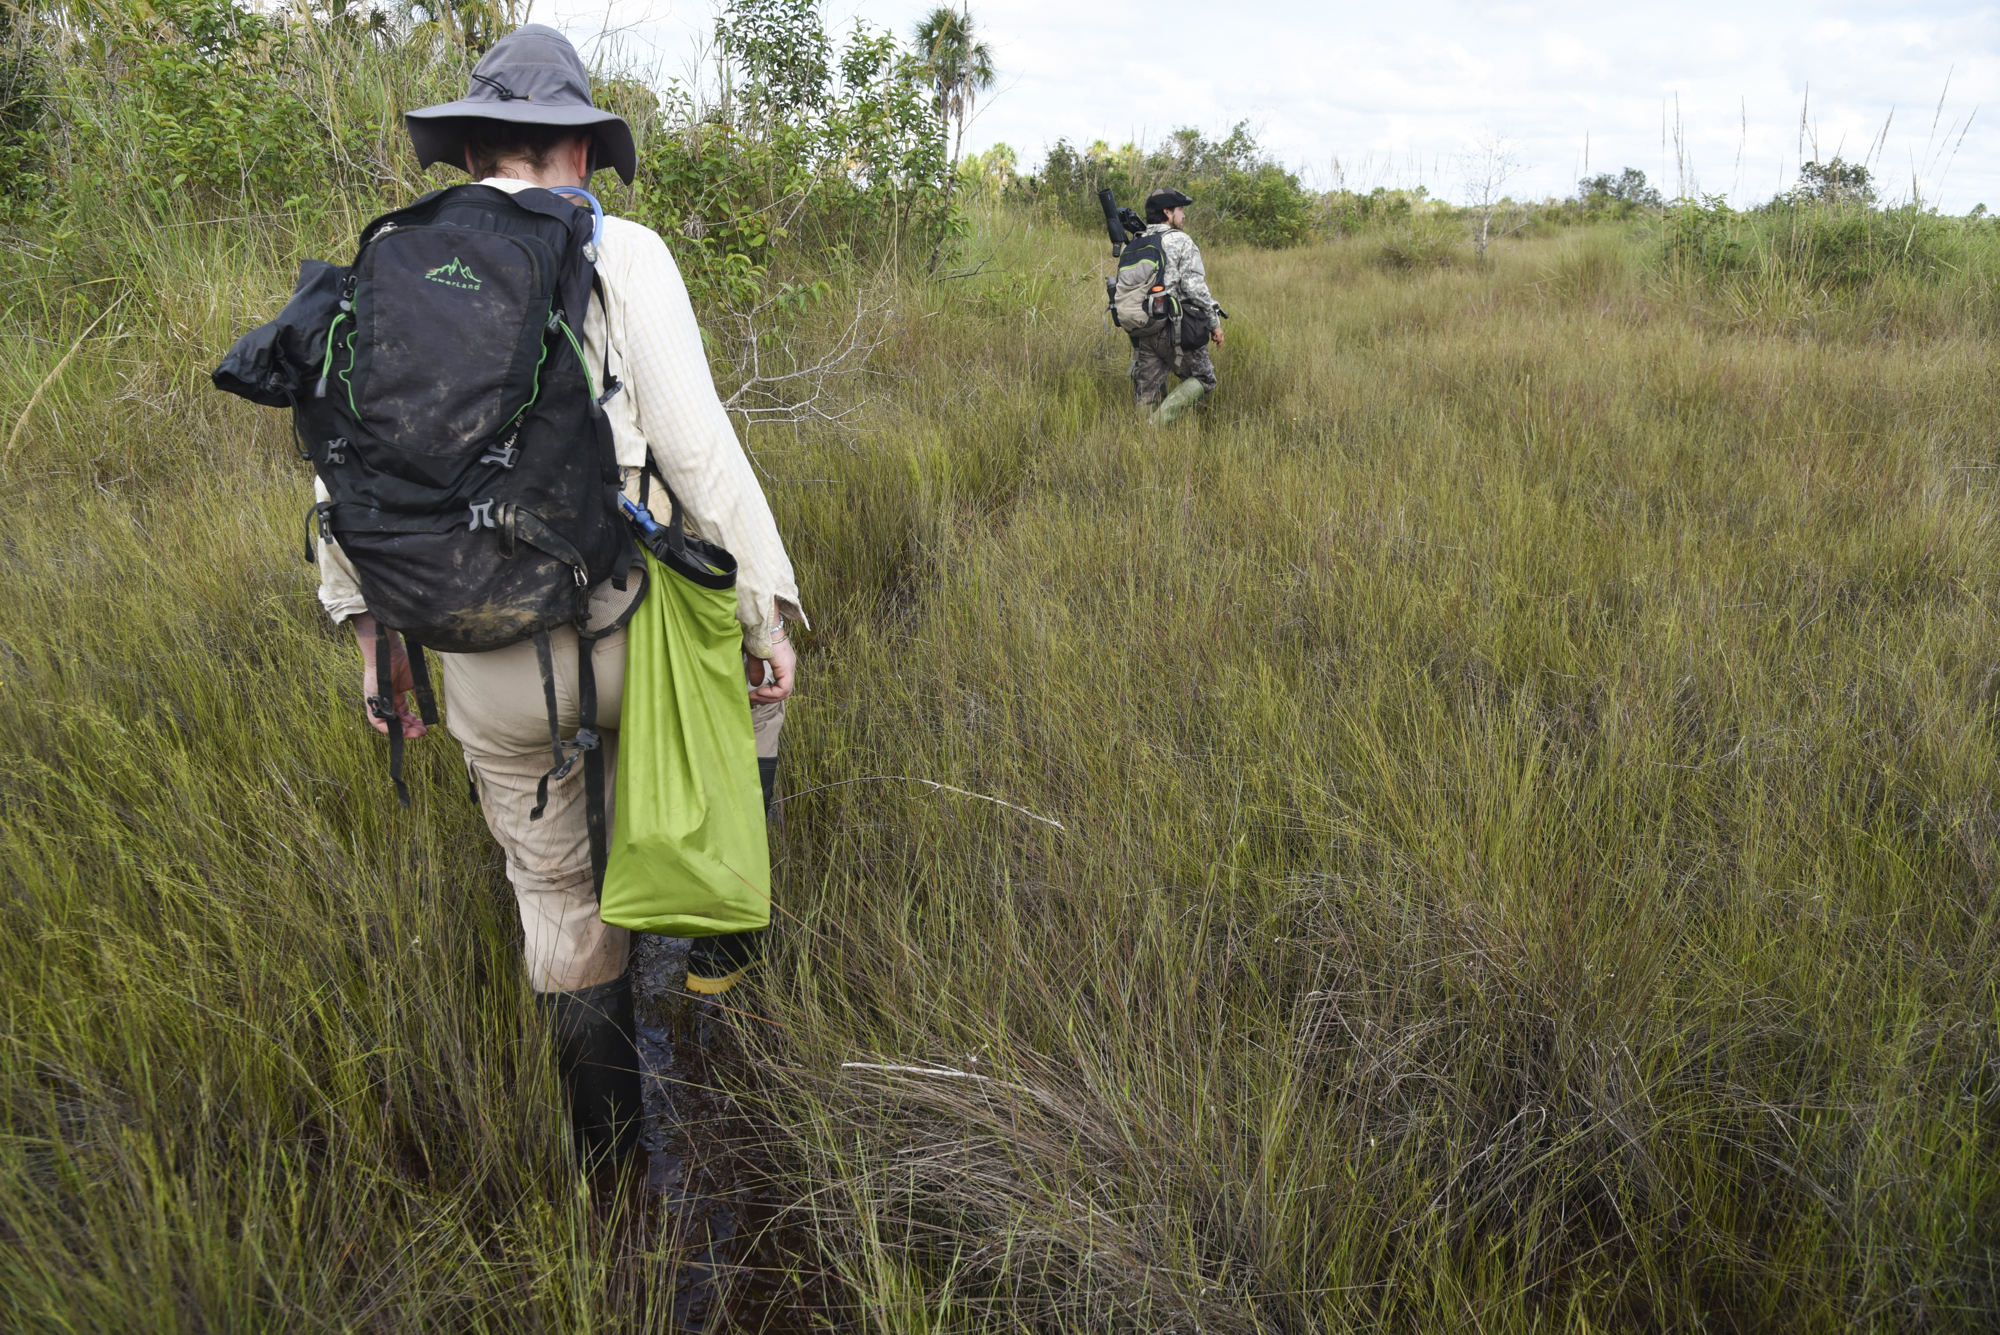 Maisie and Yohamir wade through flooded grass in search of White woodpecker ( Melanerpes candidus ) habitat. The White woodpecker is a favorite species to find by avid birders in the Pampas de Heath.